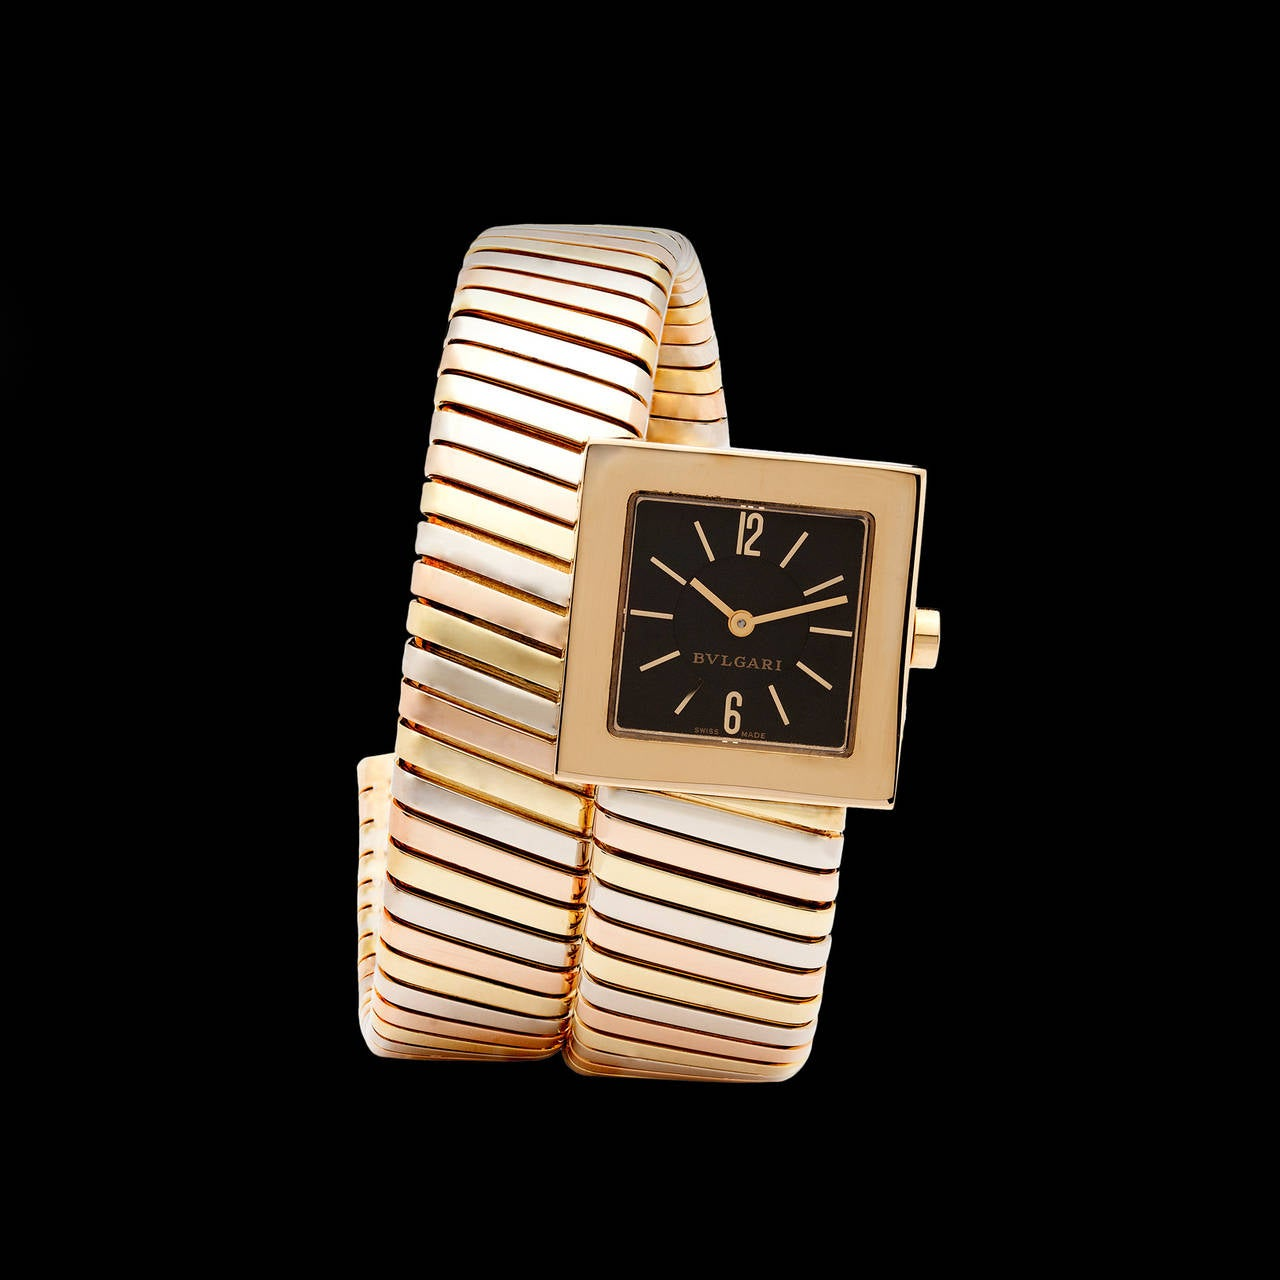 Bulgari 18Kt Yellow, White, and Rose Gold Bracelet Watch from the Serpenti collection. This duo purpose jewelry piece is a quartz movement timepiece and bracelet that comfortably wraps around the wrist. The wrist size is 6 inches in circumference,